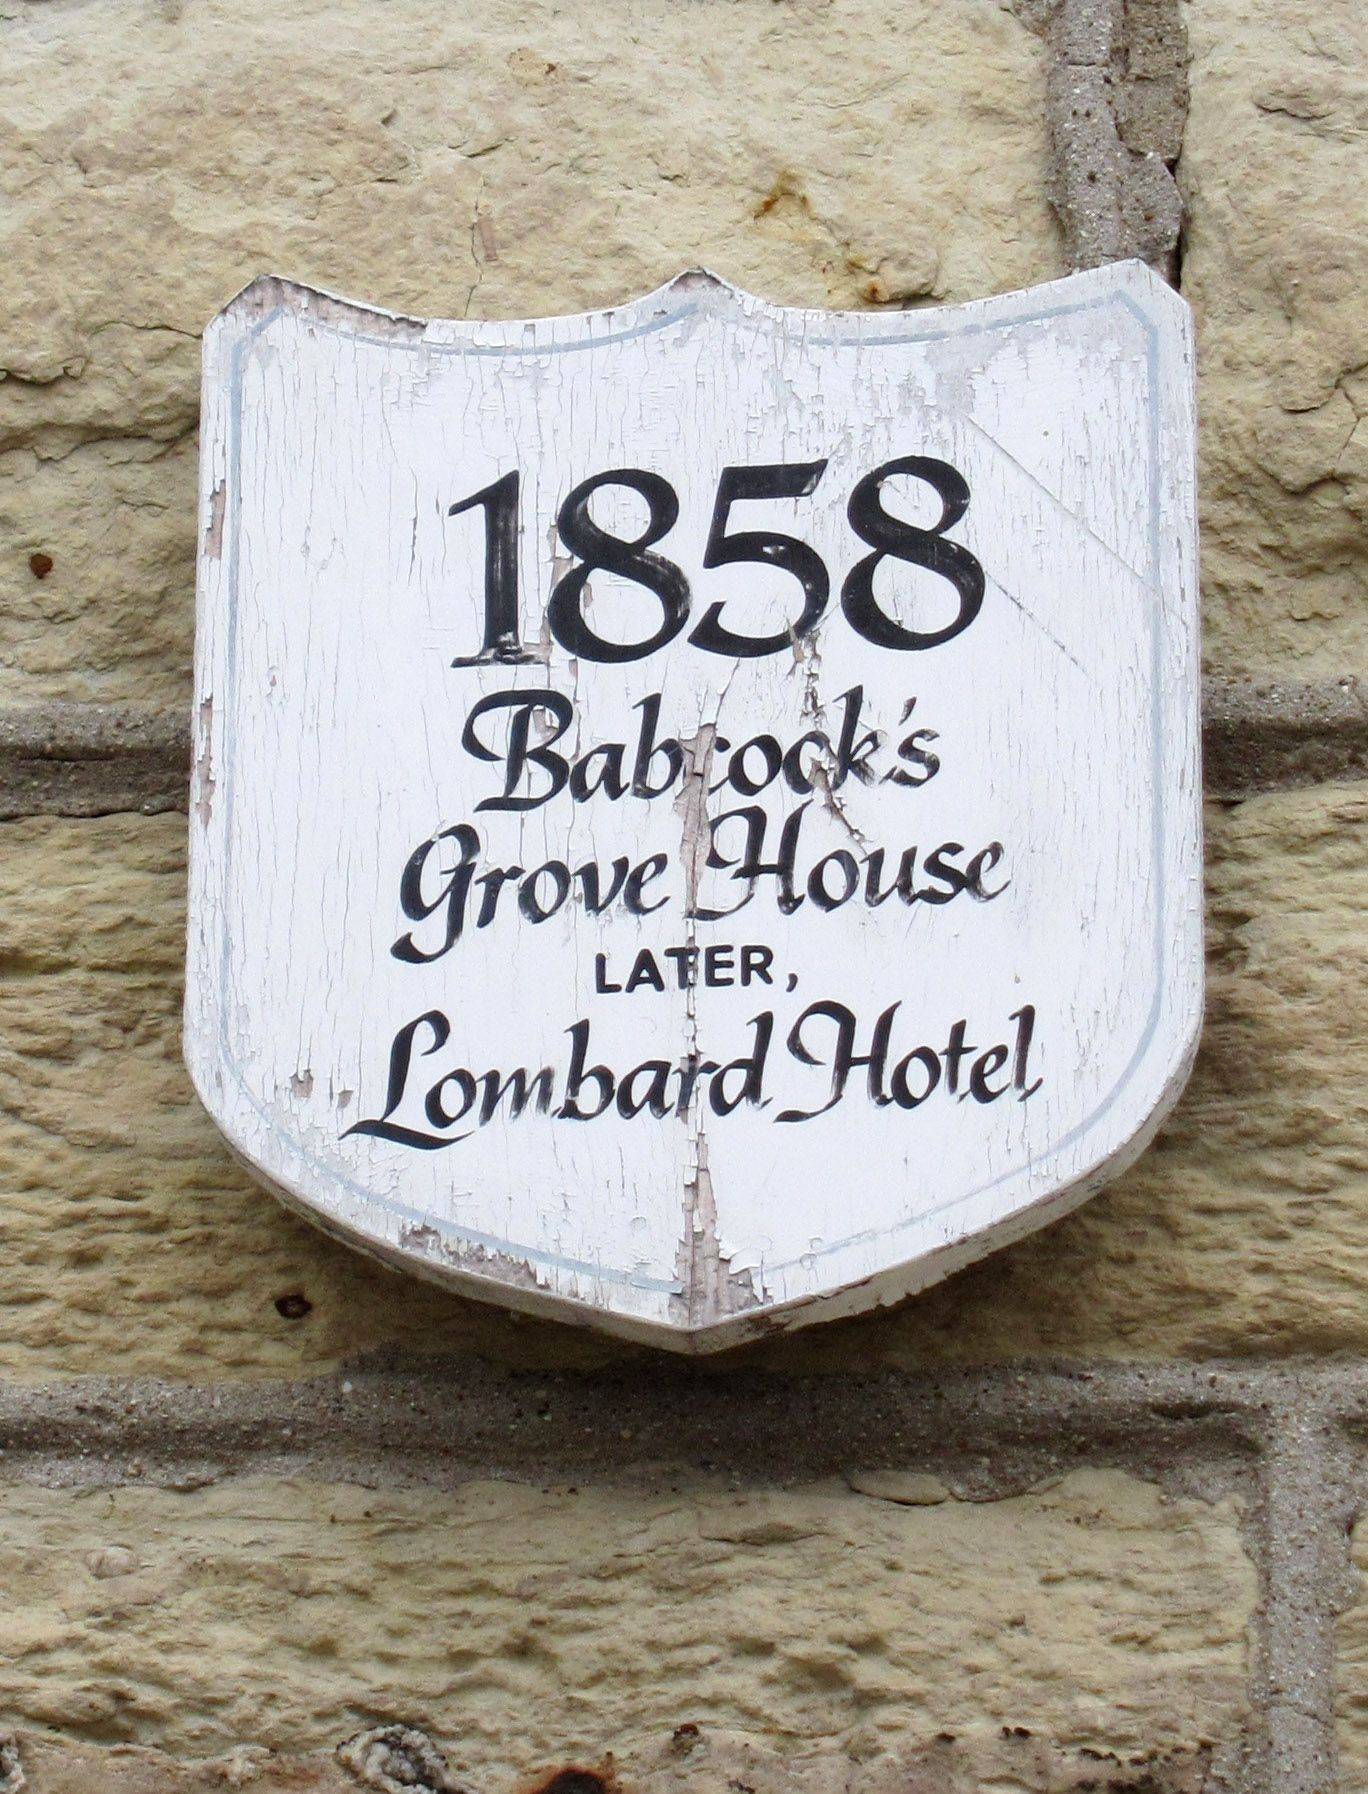 The former Lombard Hotel is one of about 35 sites in the village recognized with an honorary plaque from the Lombard Historical Society.